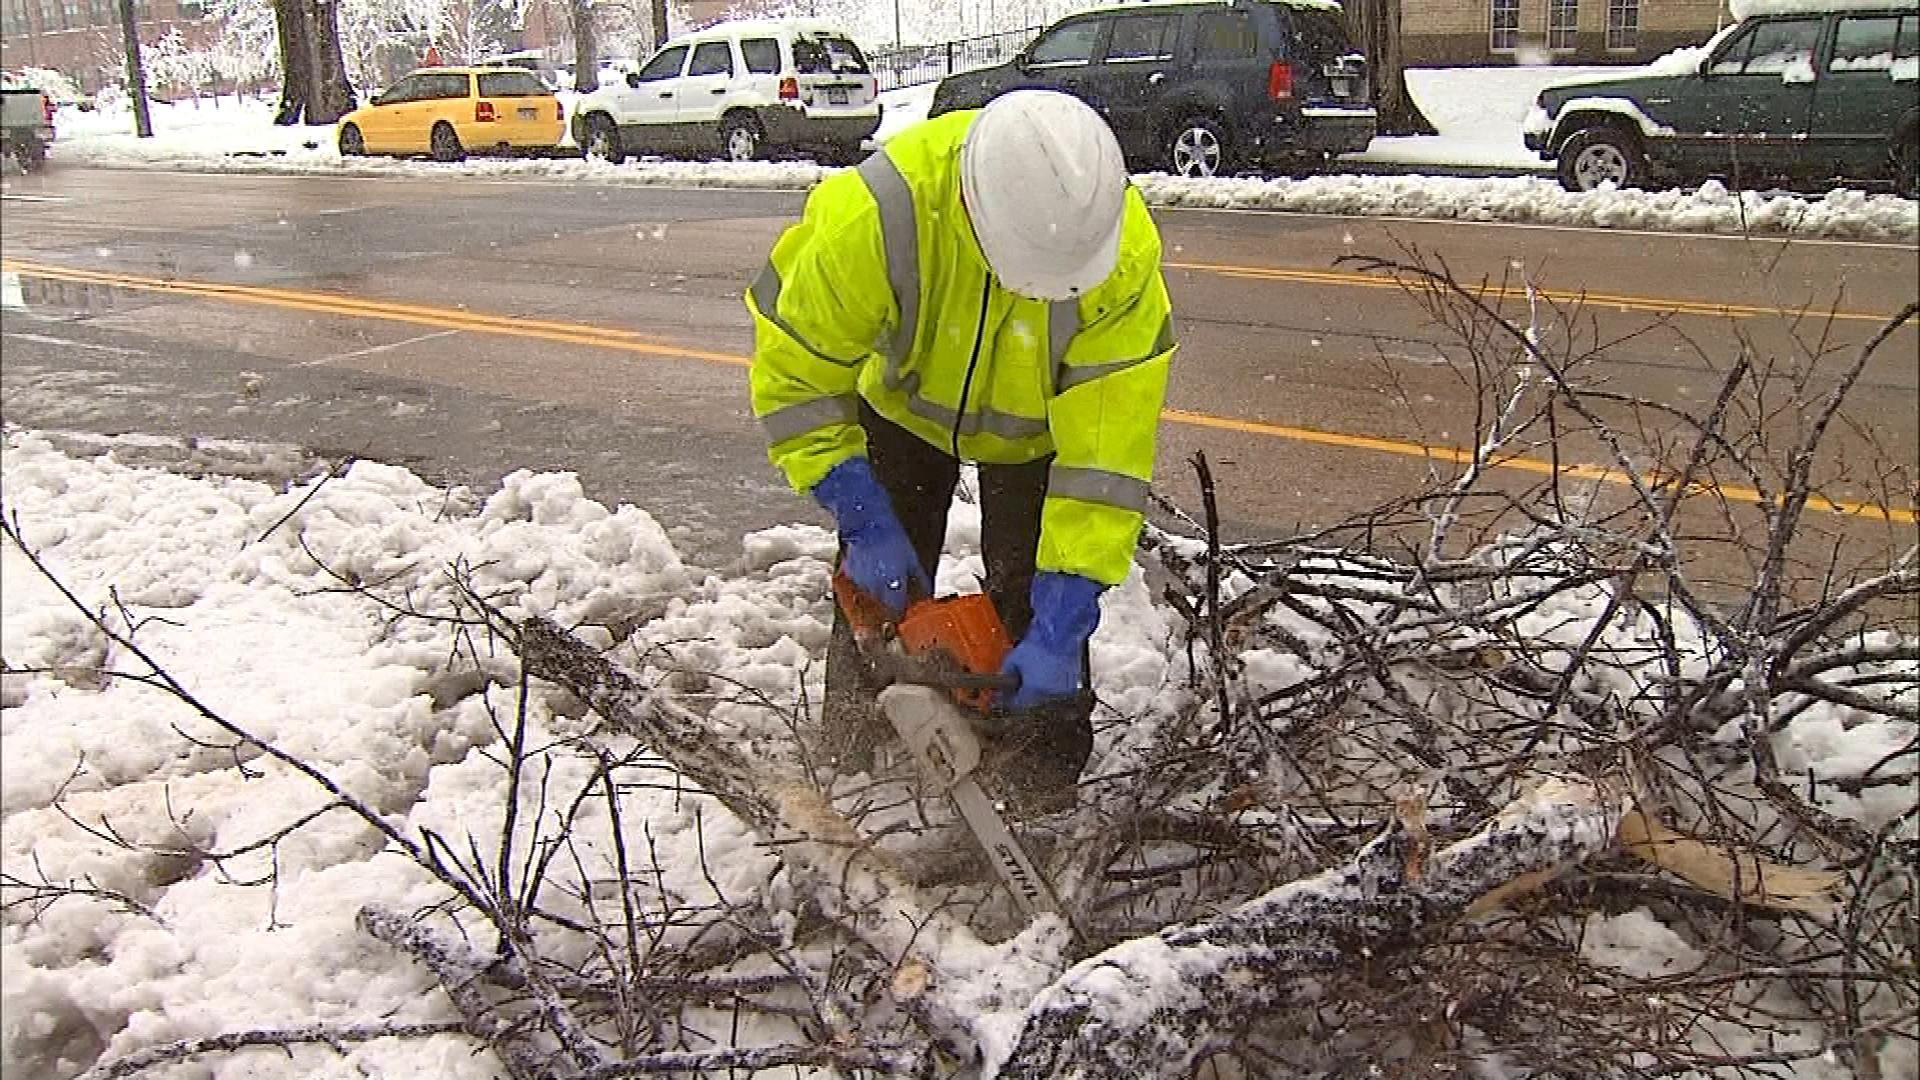 Crews clearing streets of downed branches in Fort Collins (credit: CBS)